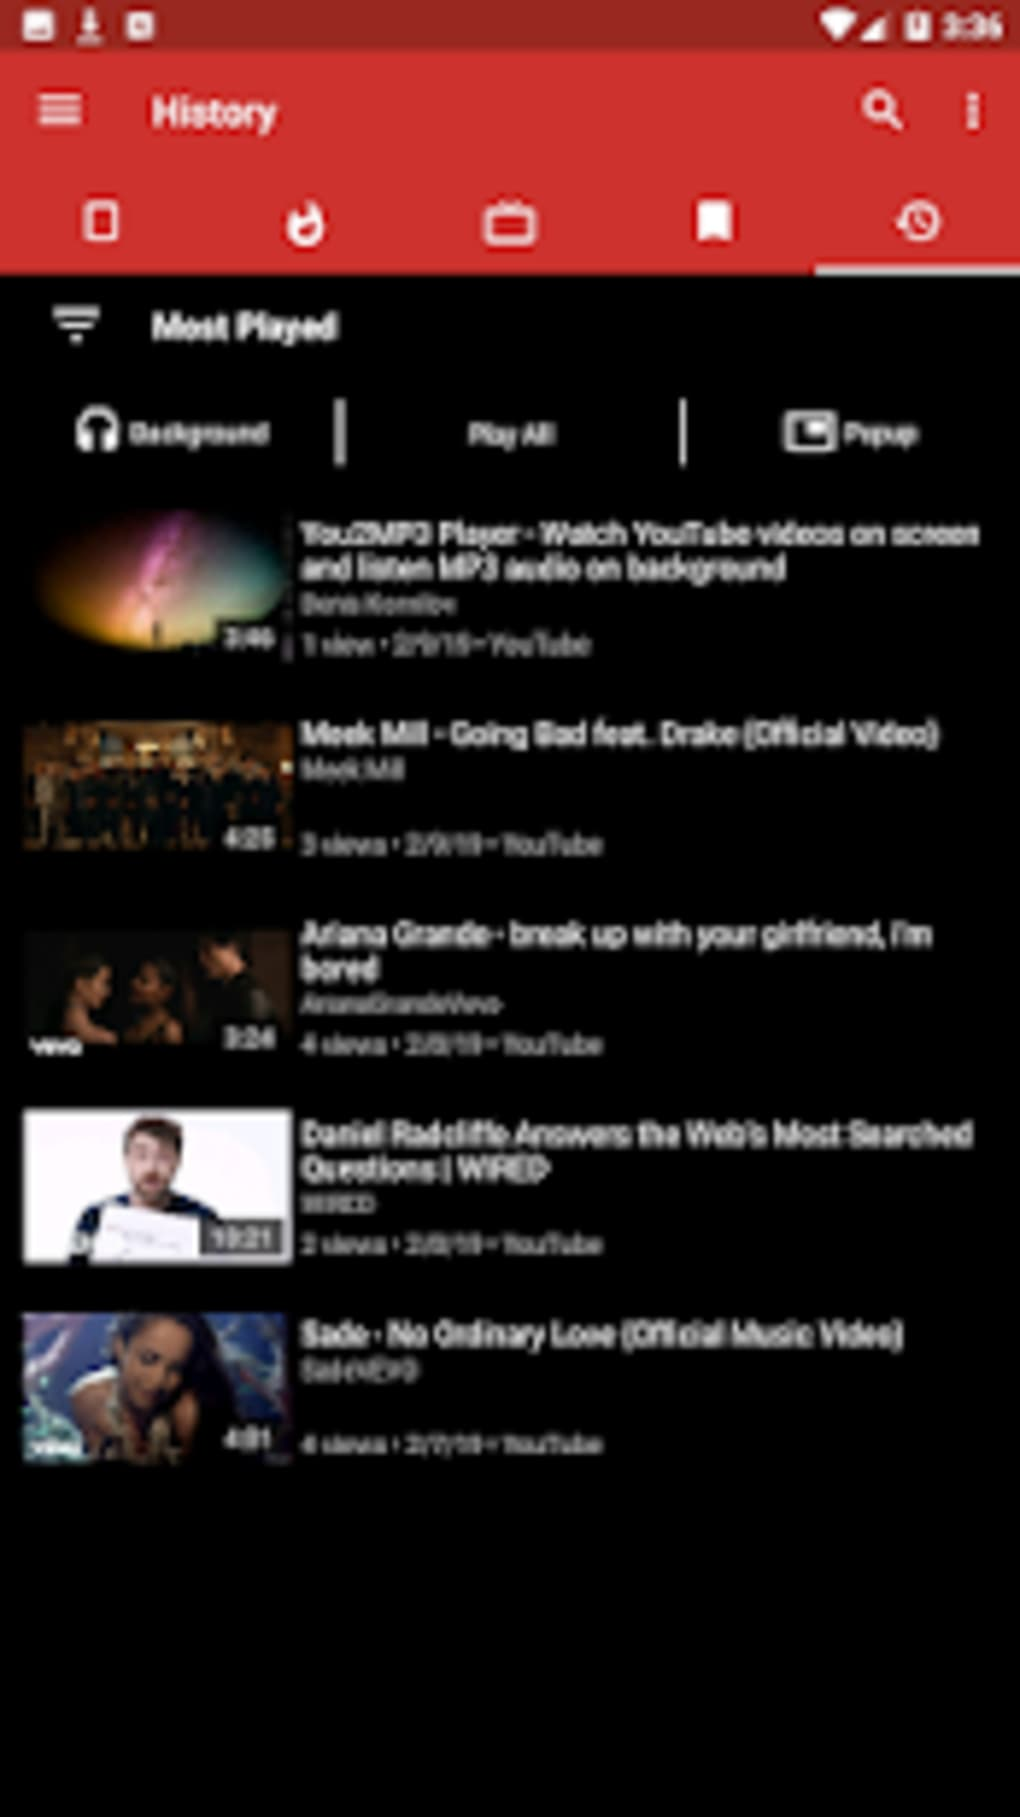 You2MP3 - YouTube to MP3 background music player for Android - Download